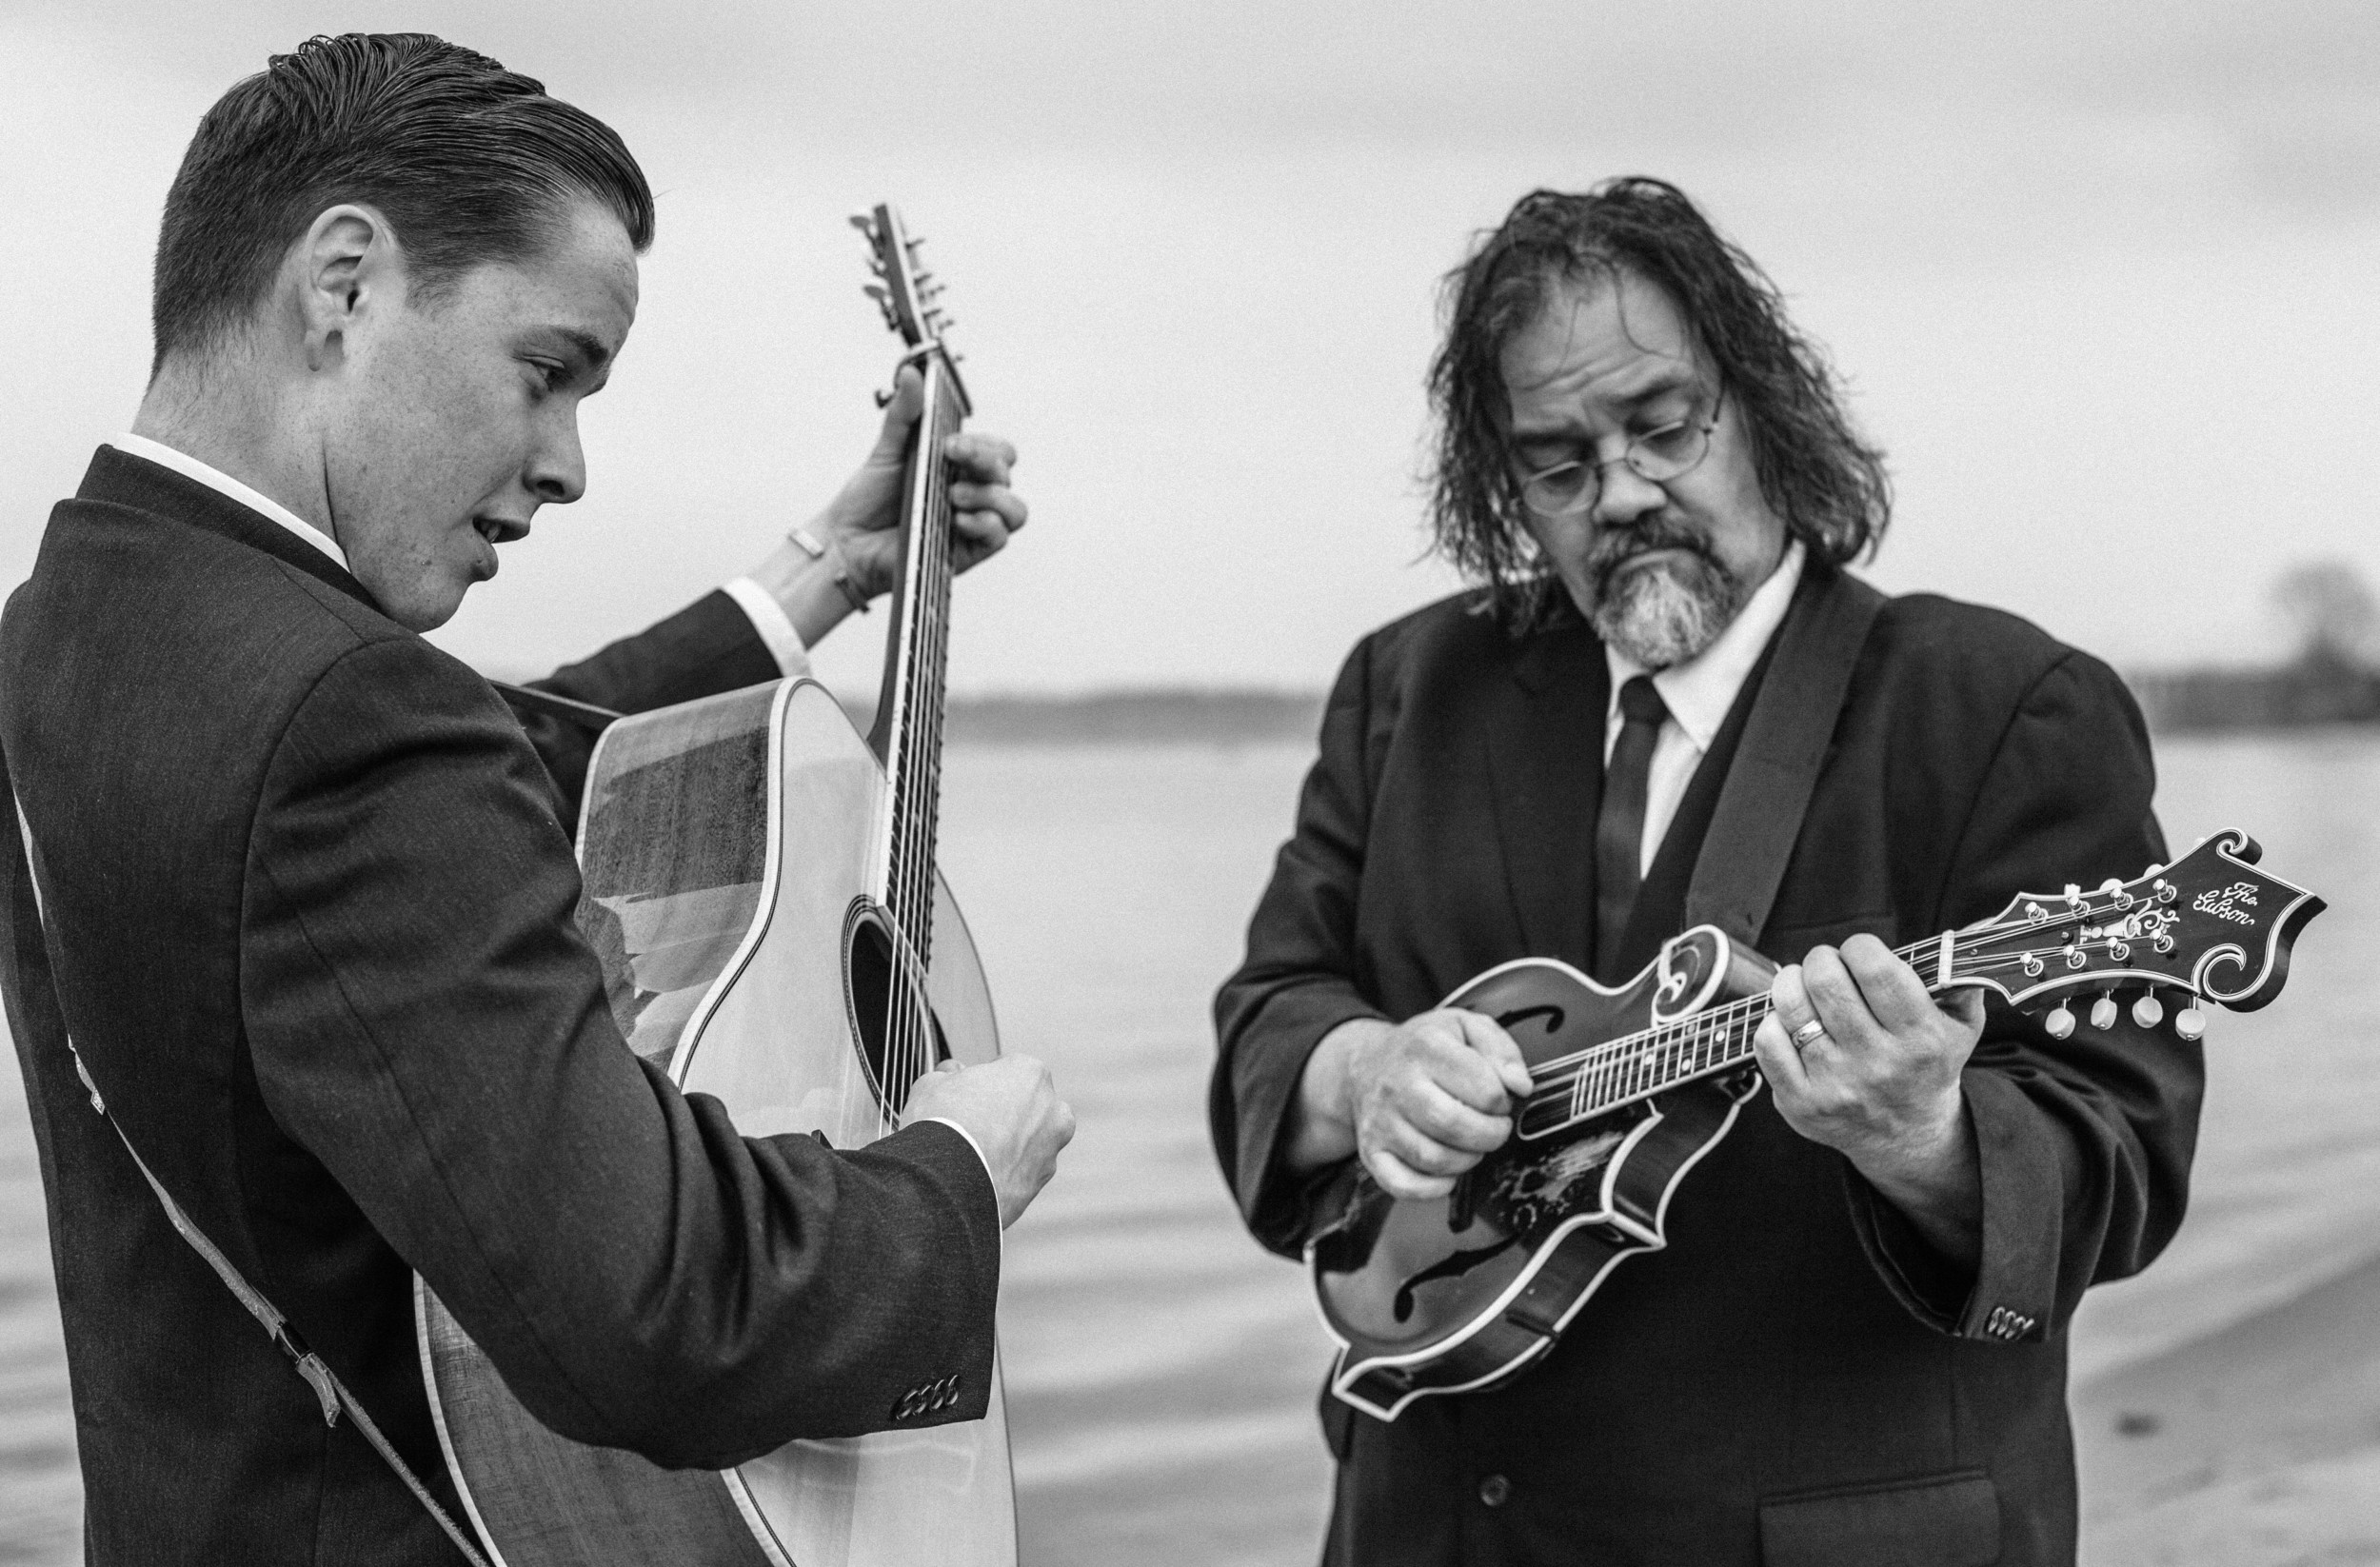 Billy Strings and don julin, photo by Tyler Franz